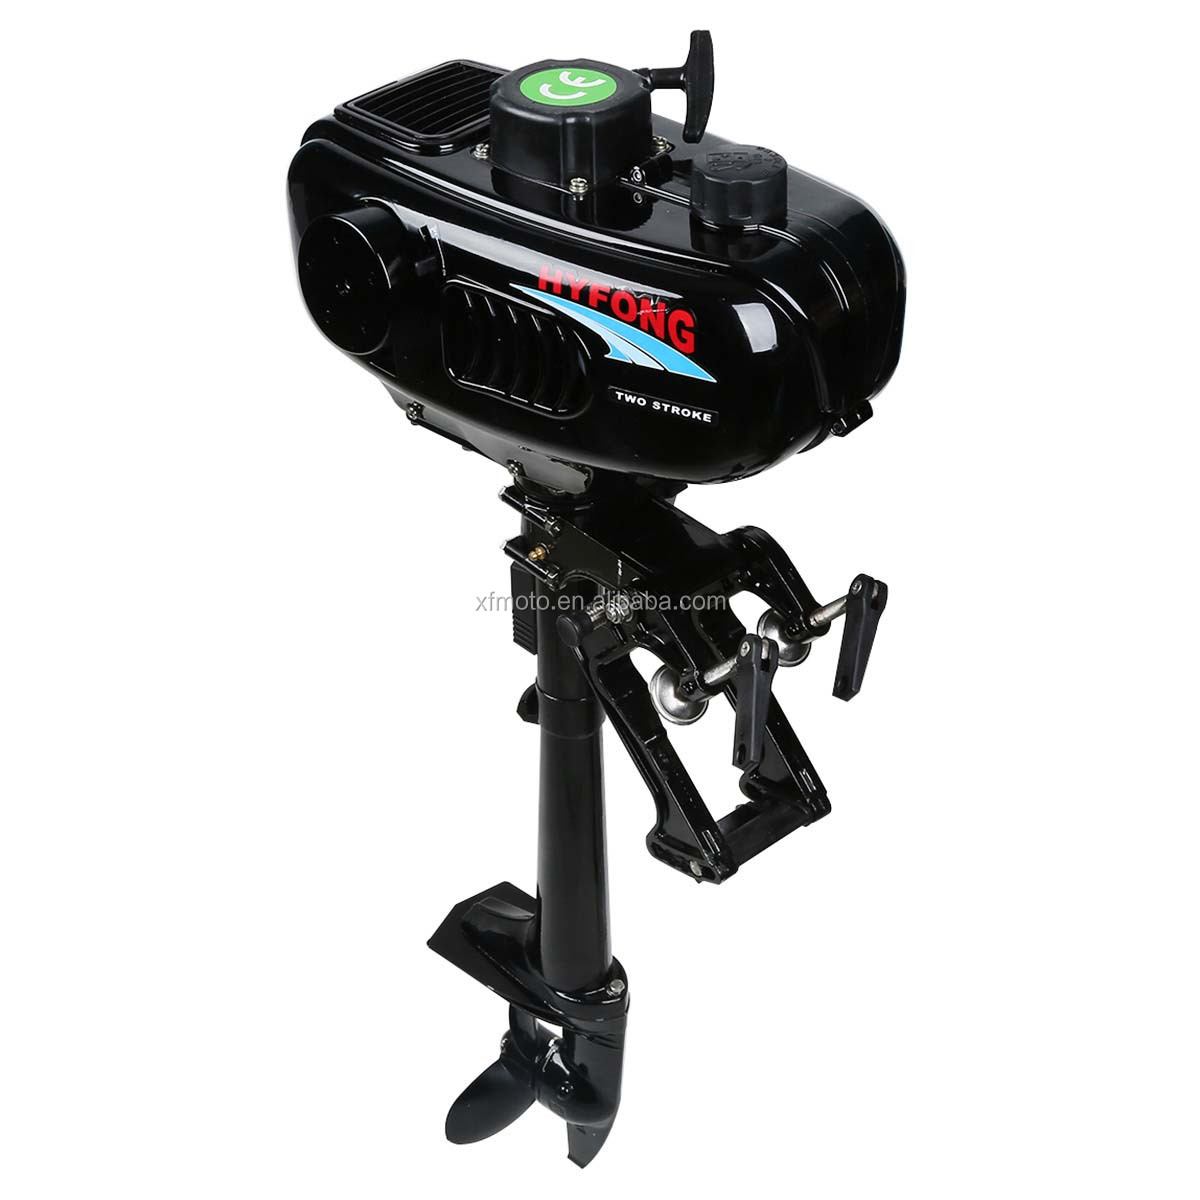 New 2hp outboard motor boat engine updated with 2 stroke for New outboard boat motors